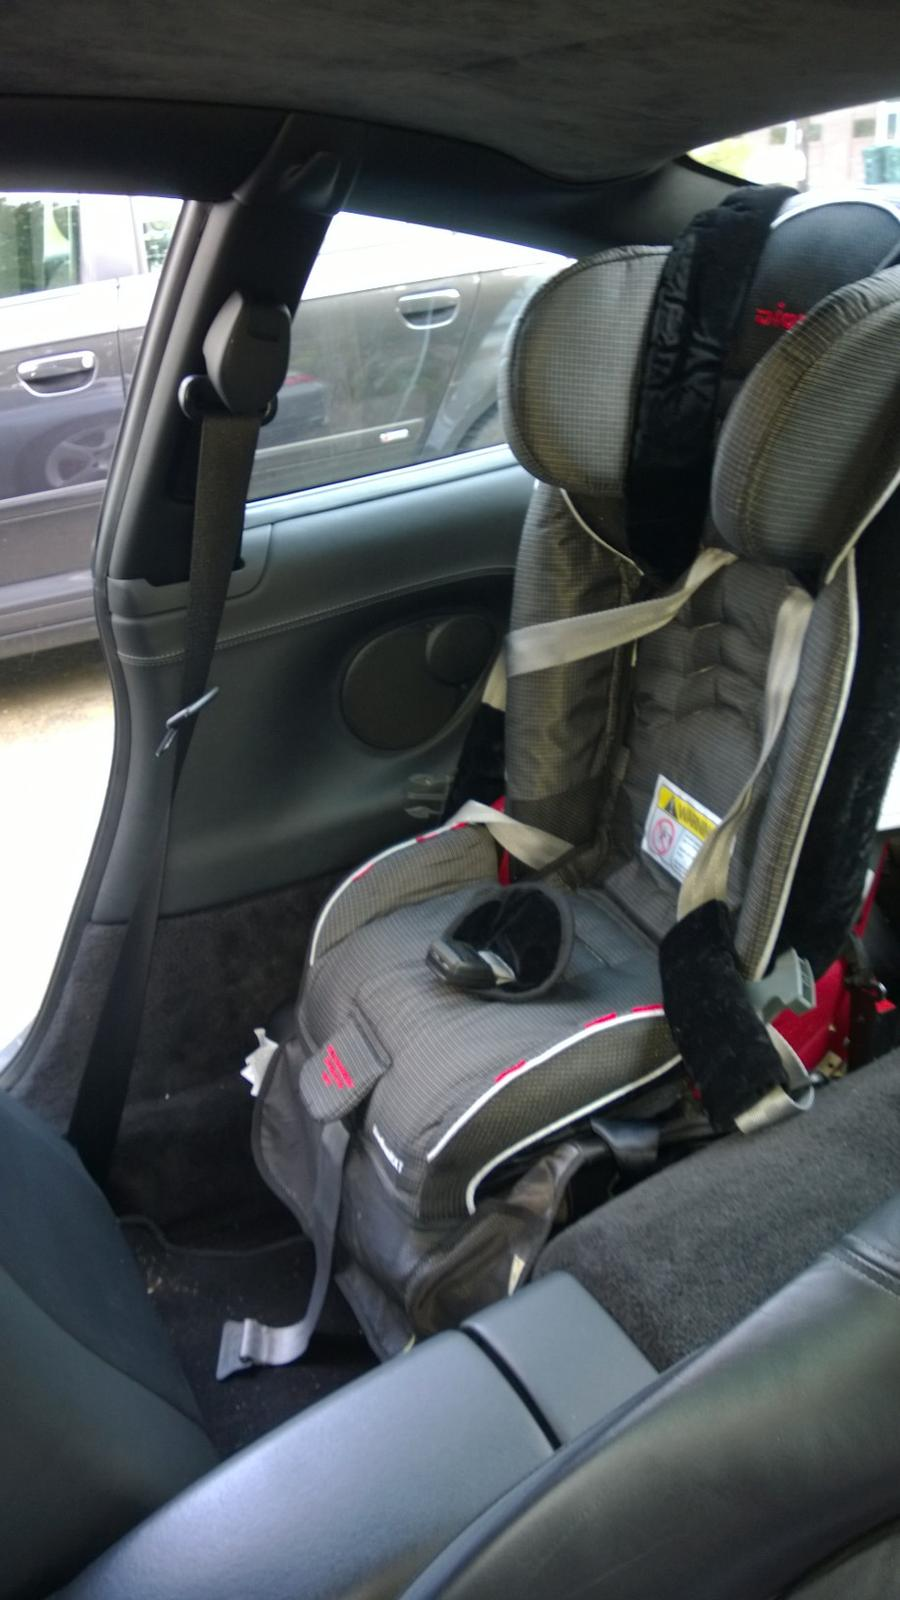 Baby Car Seat In A Taxi Forward Facing Rear Mounted Child Seat For My 2 Year Old